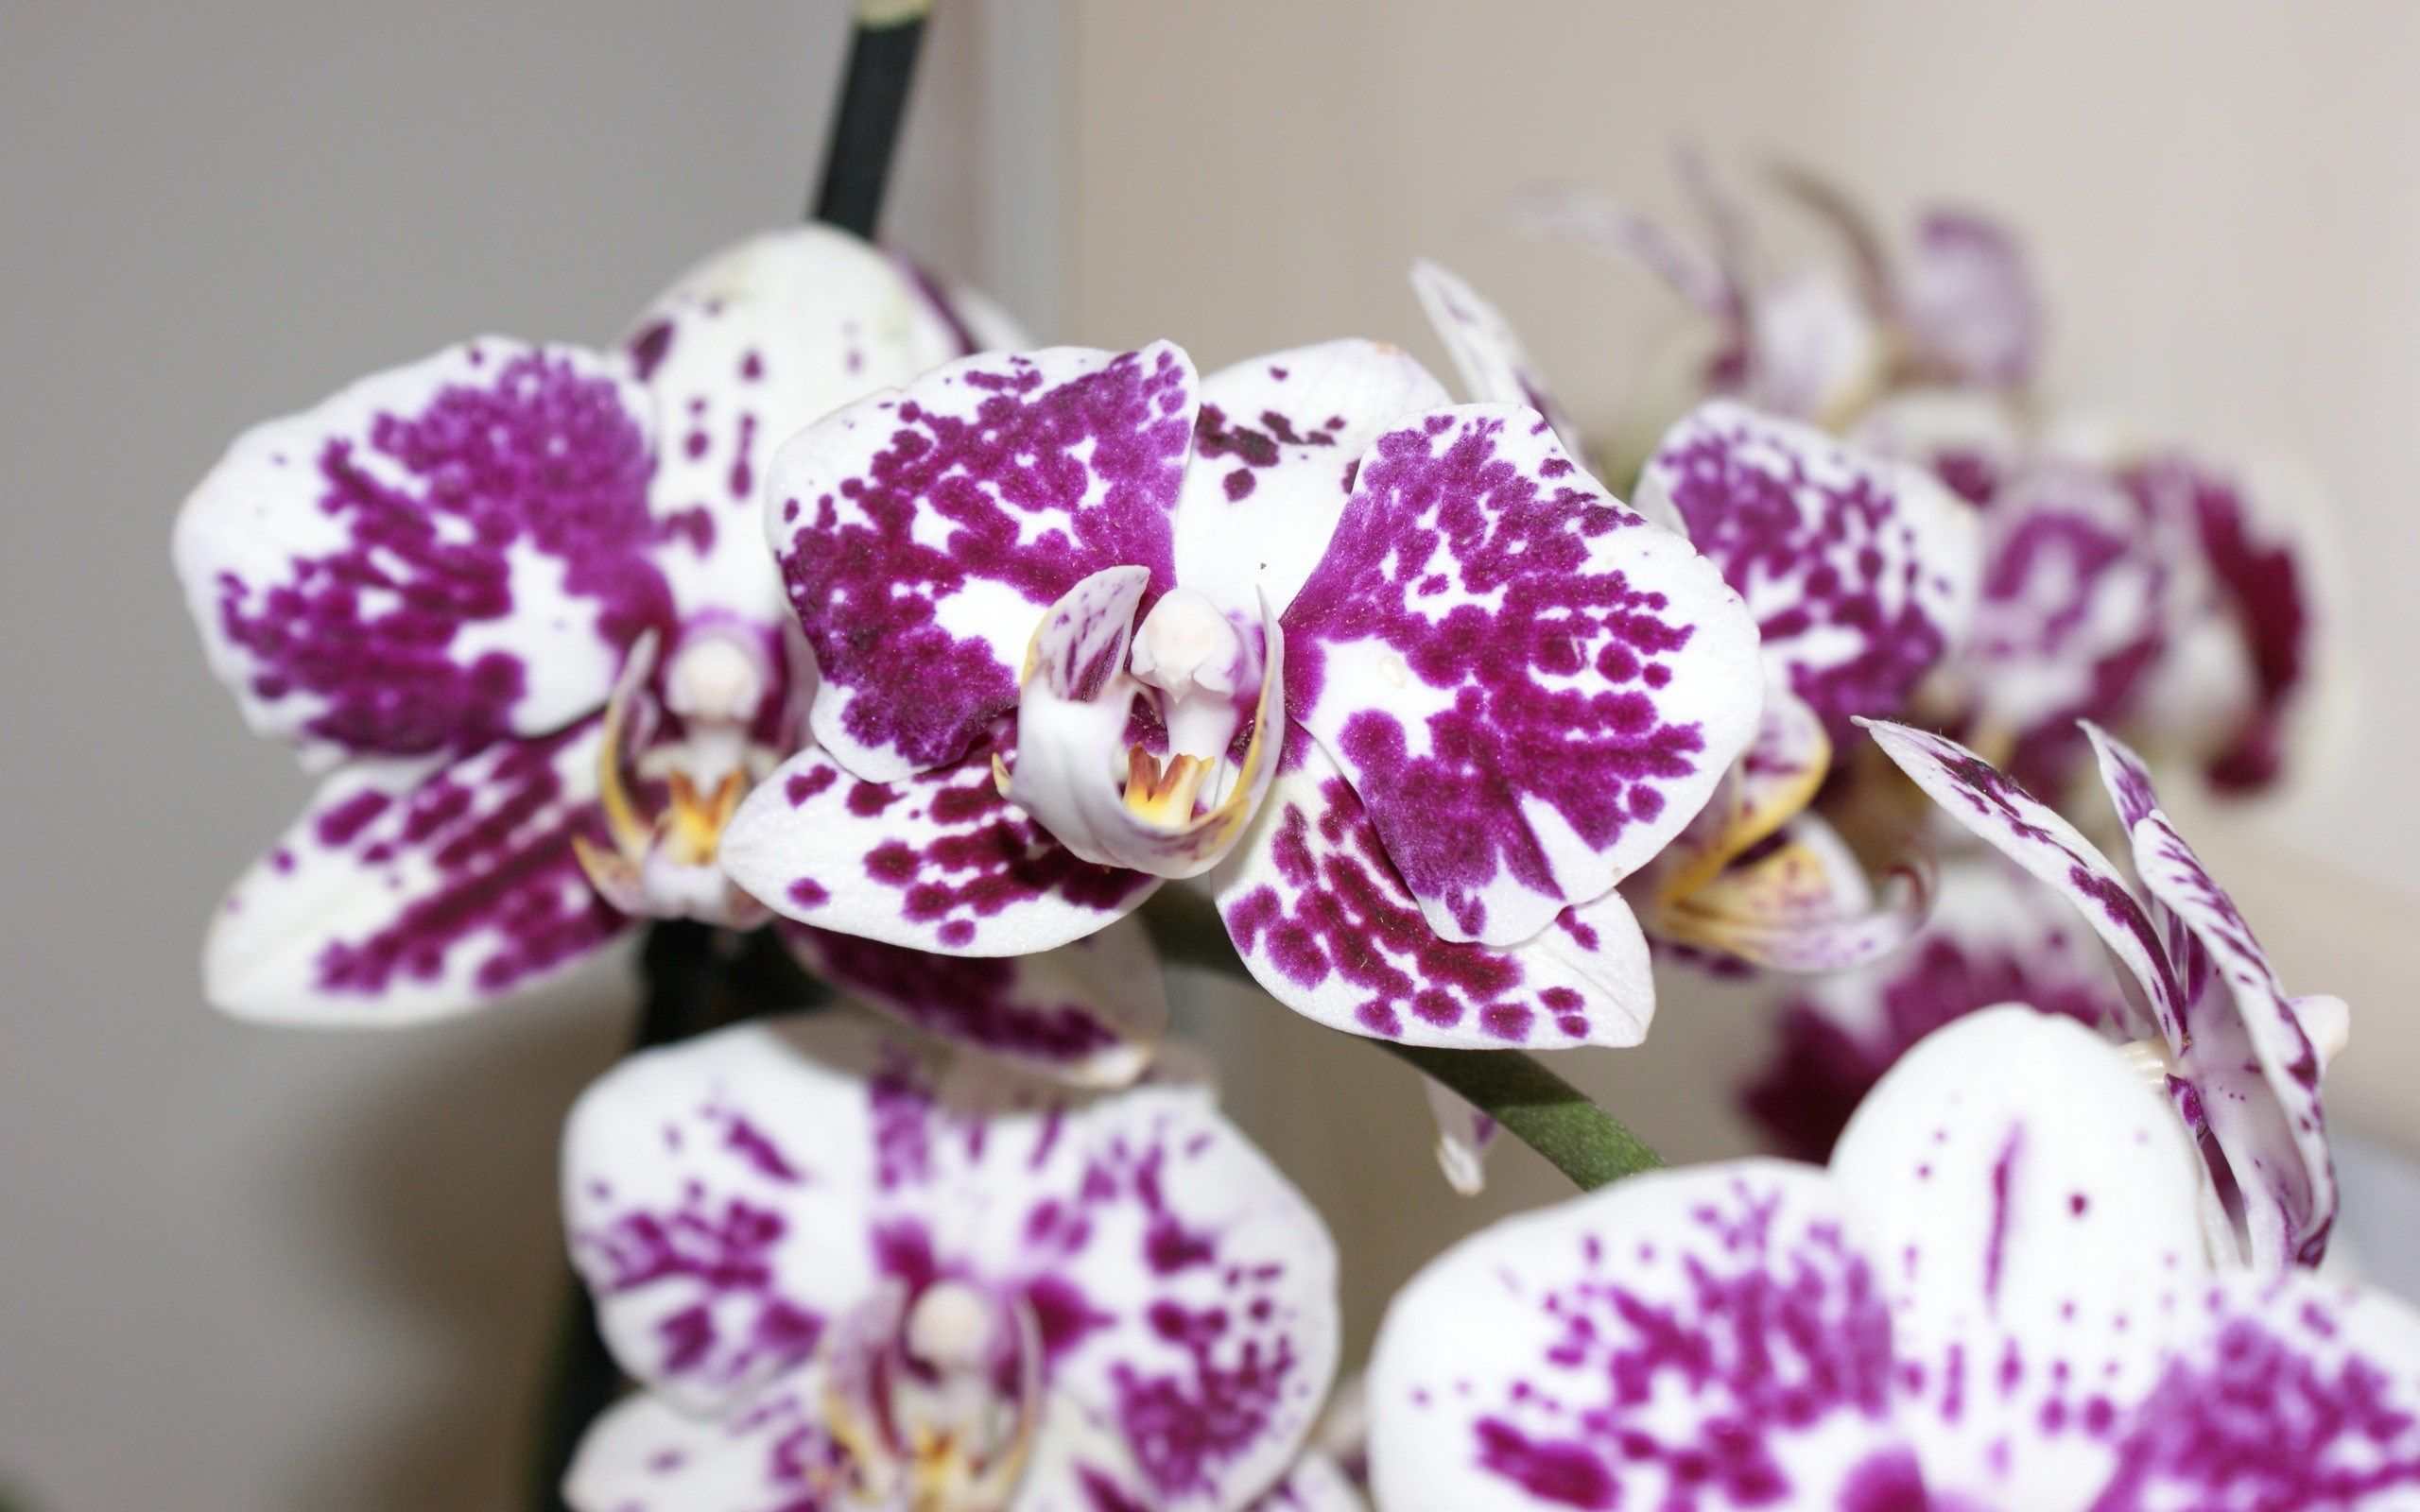 Orchid backround full hd backgrounds chisholm brian x